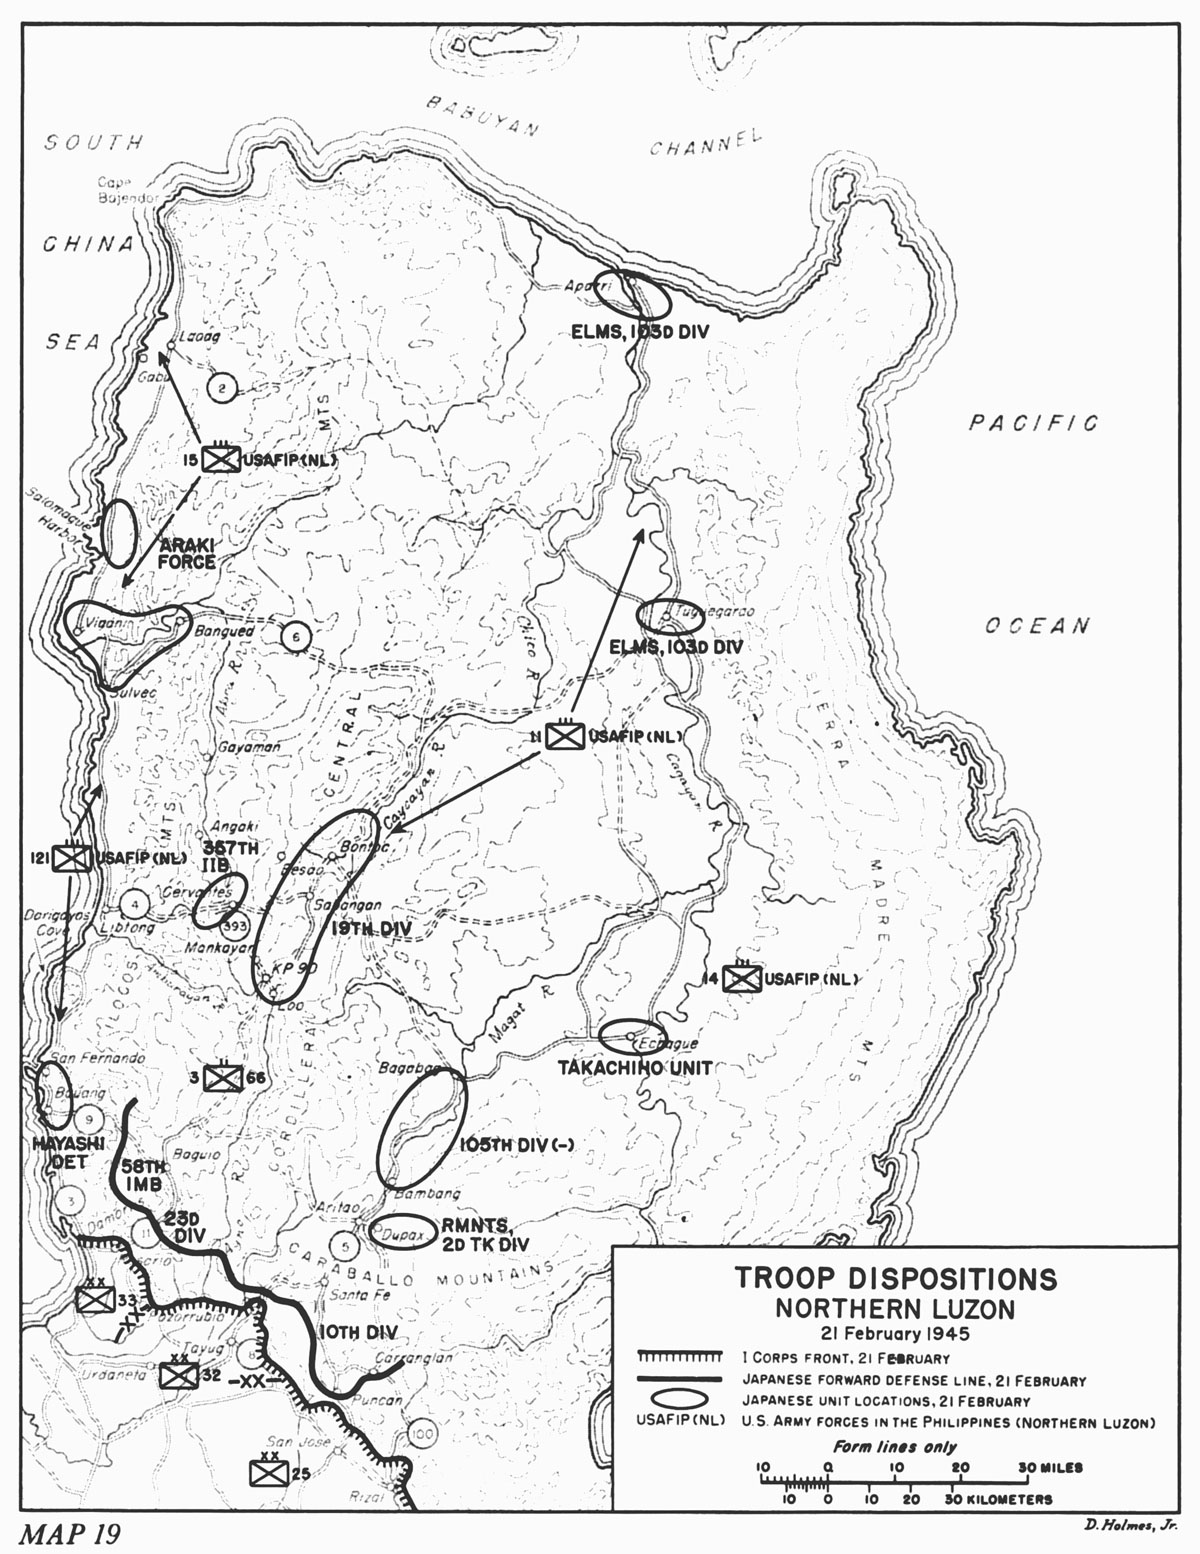 Troop Dispositions Northern Luzon 21 February 1945